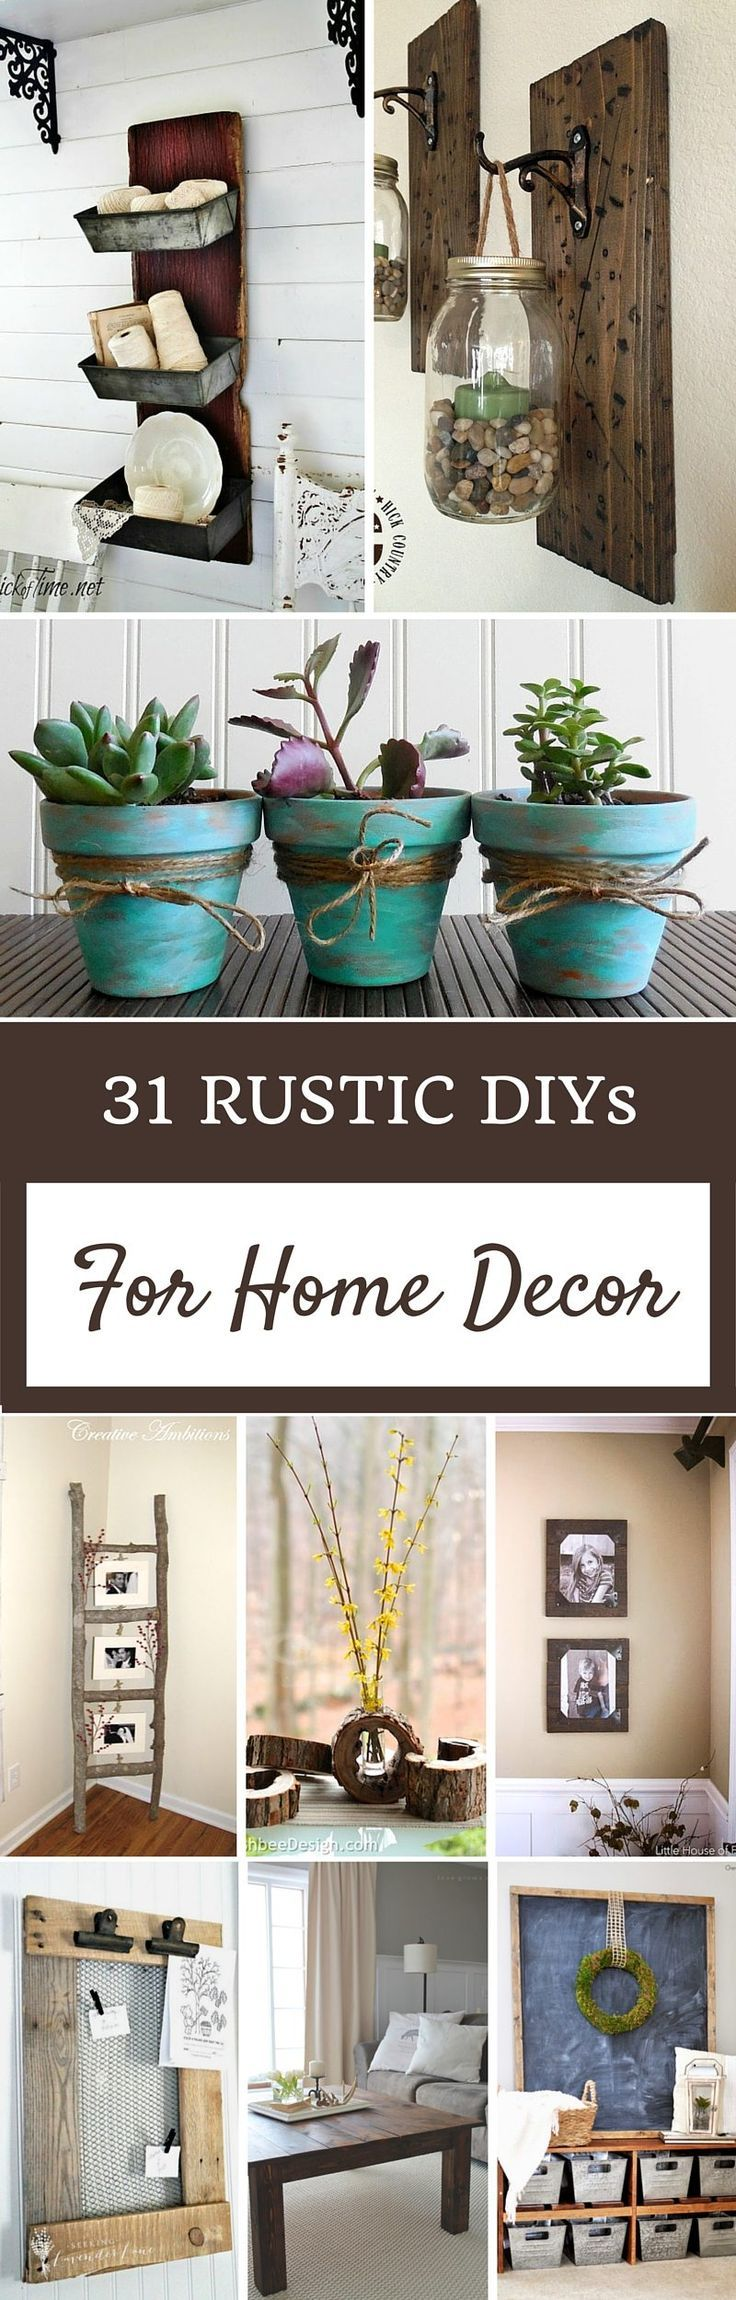 Pinterest Diy Home Decor 31 Rustic Diy Home Decor Projects Hometalk Spring Inspiration